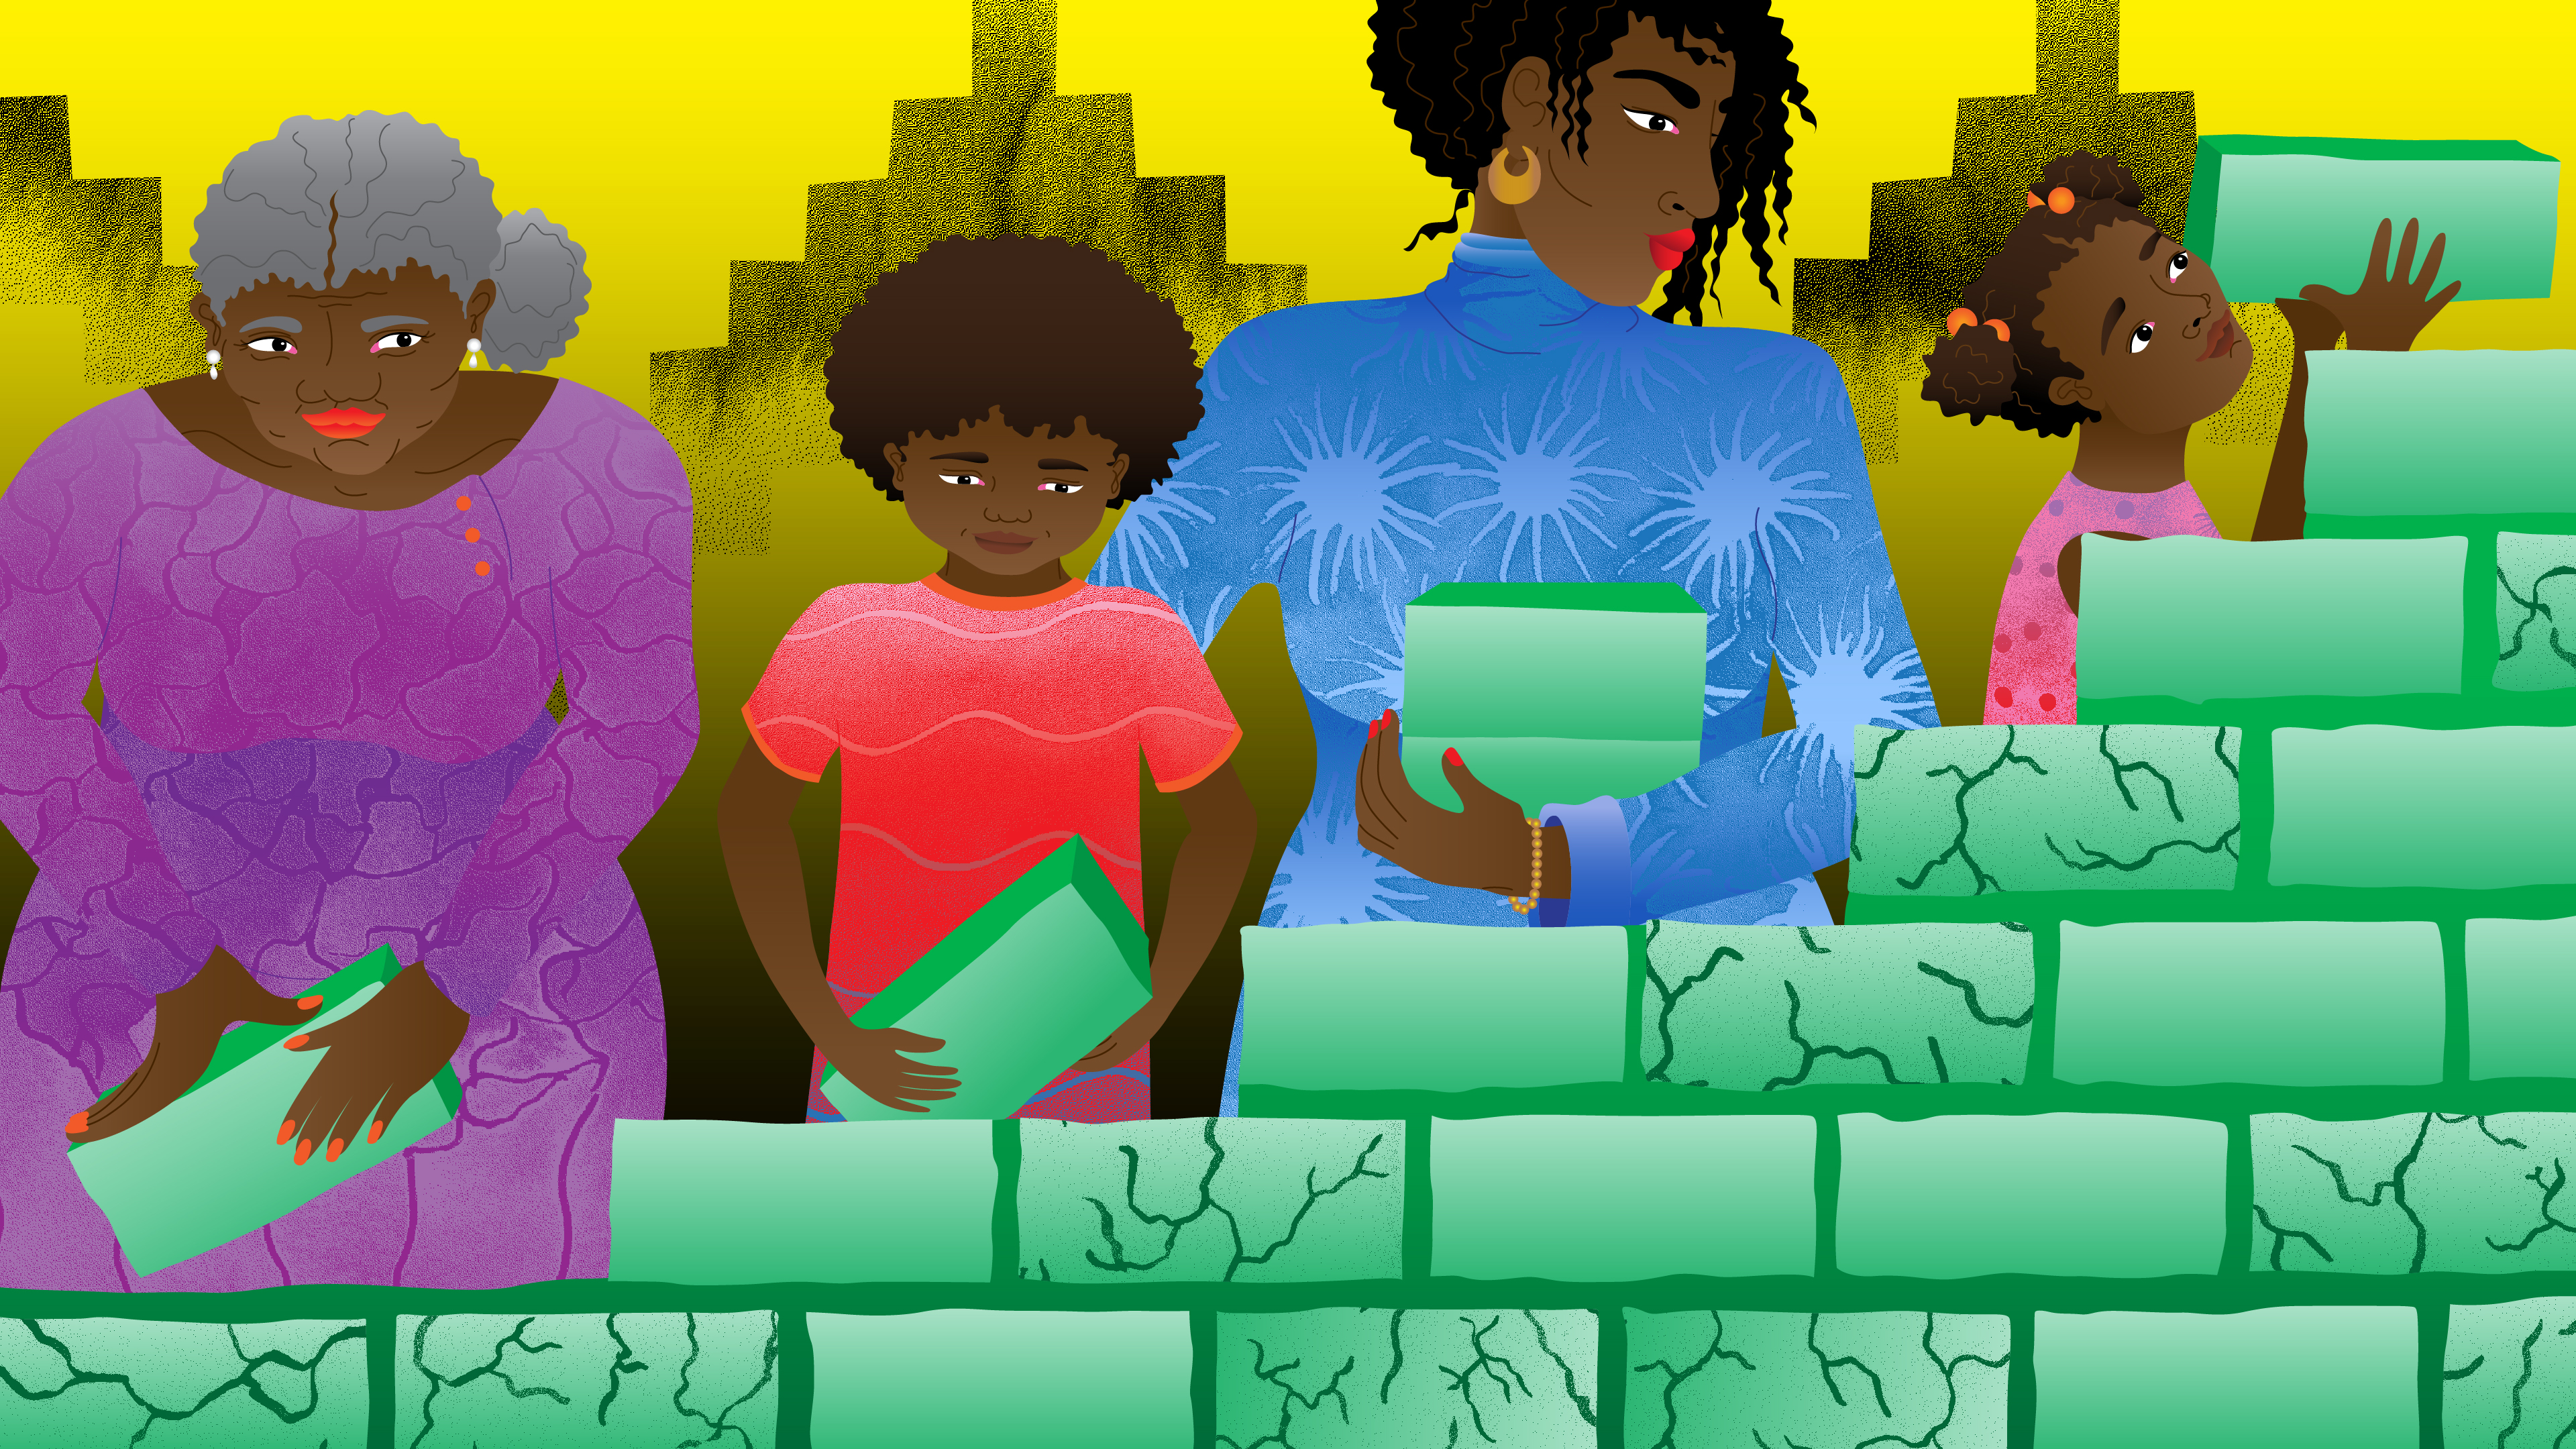 An illustration depicts an African American family stacking bricks together, and the older generation has fewer bricks, in this image about wealth.